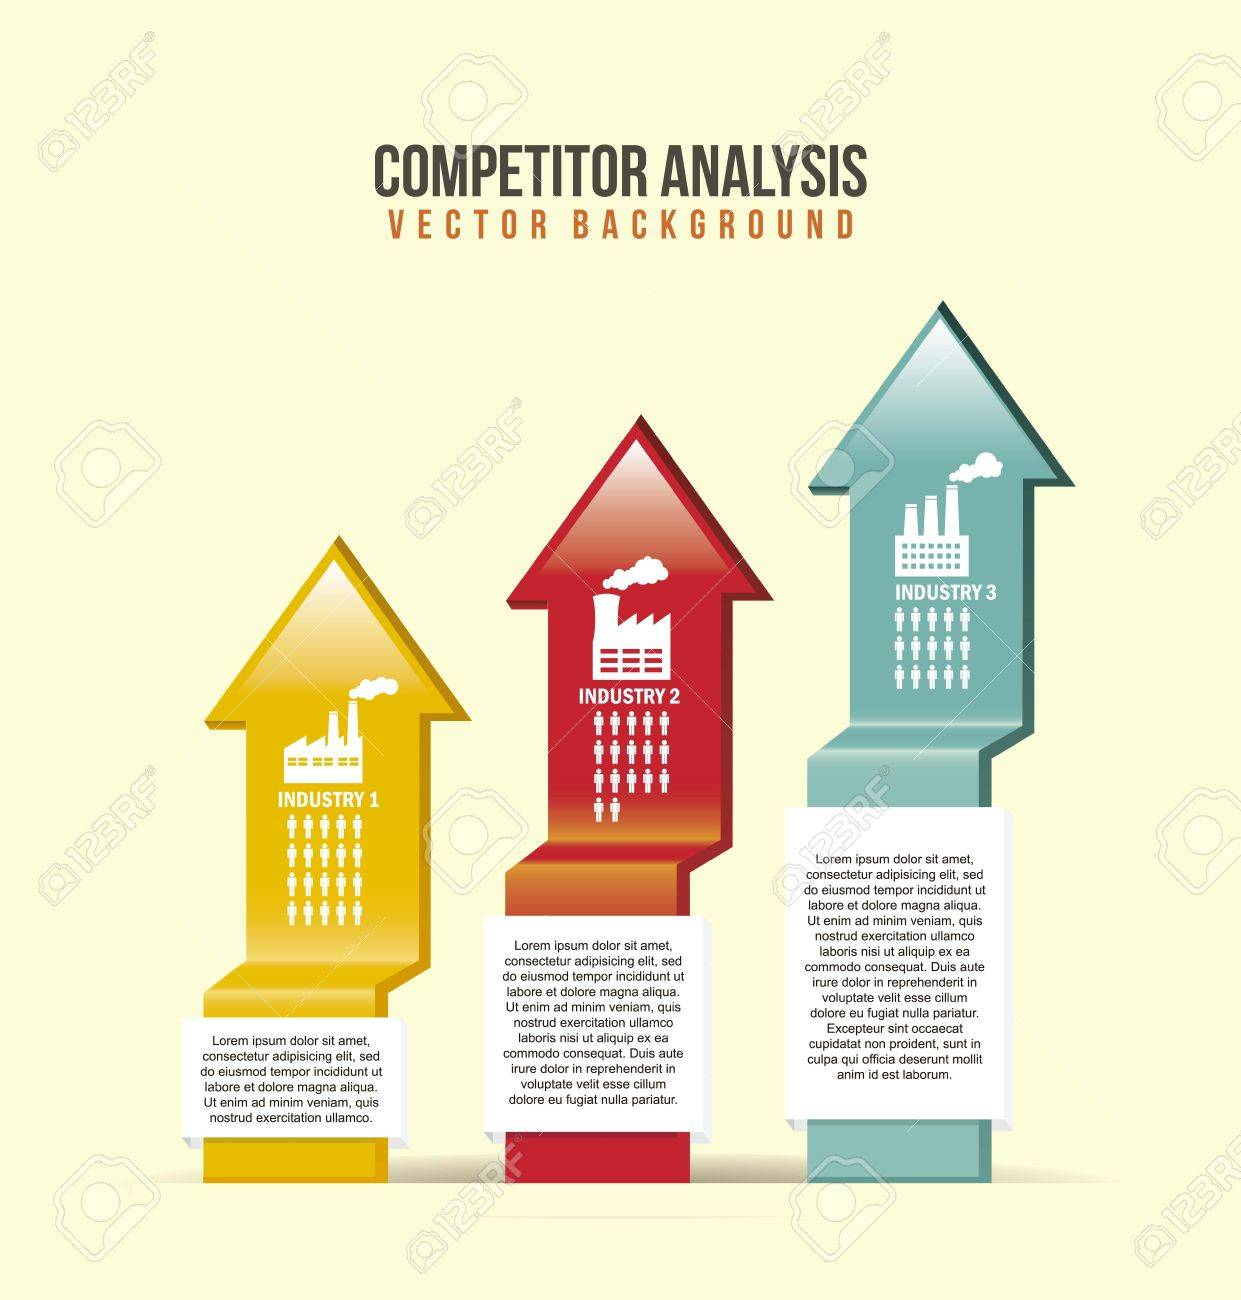 competitor analysis illustration with arrows. vector background Stock Vector - 17564909